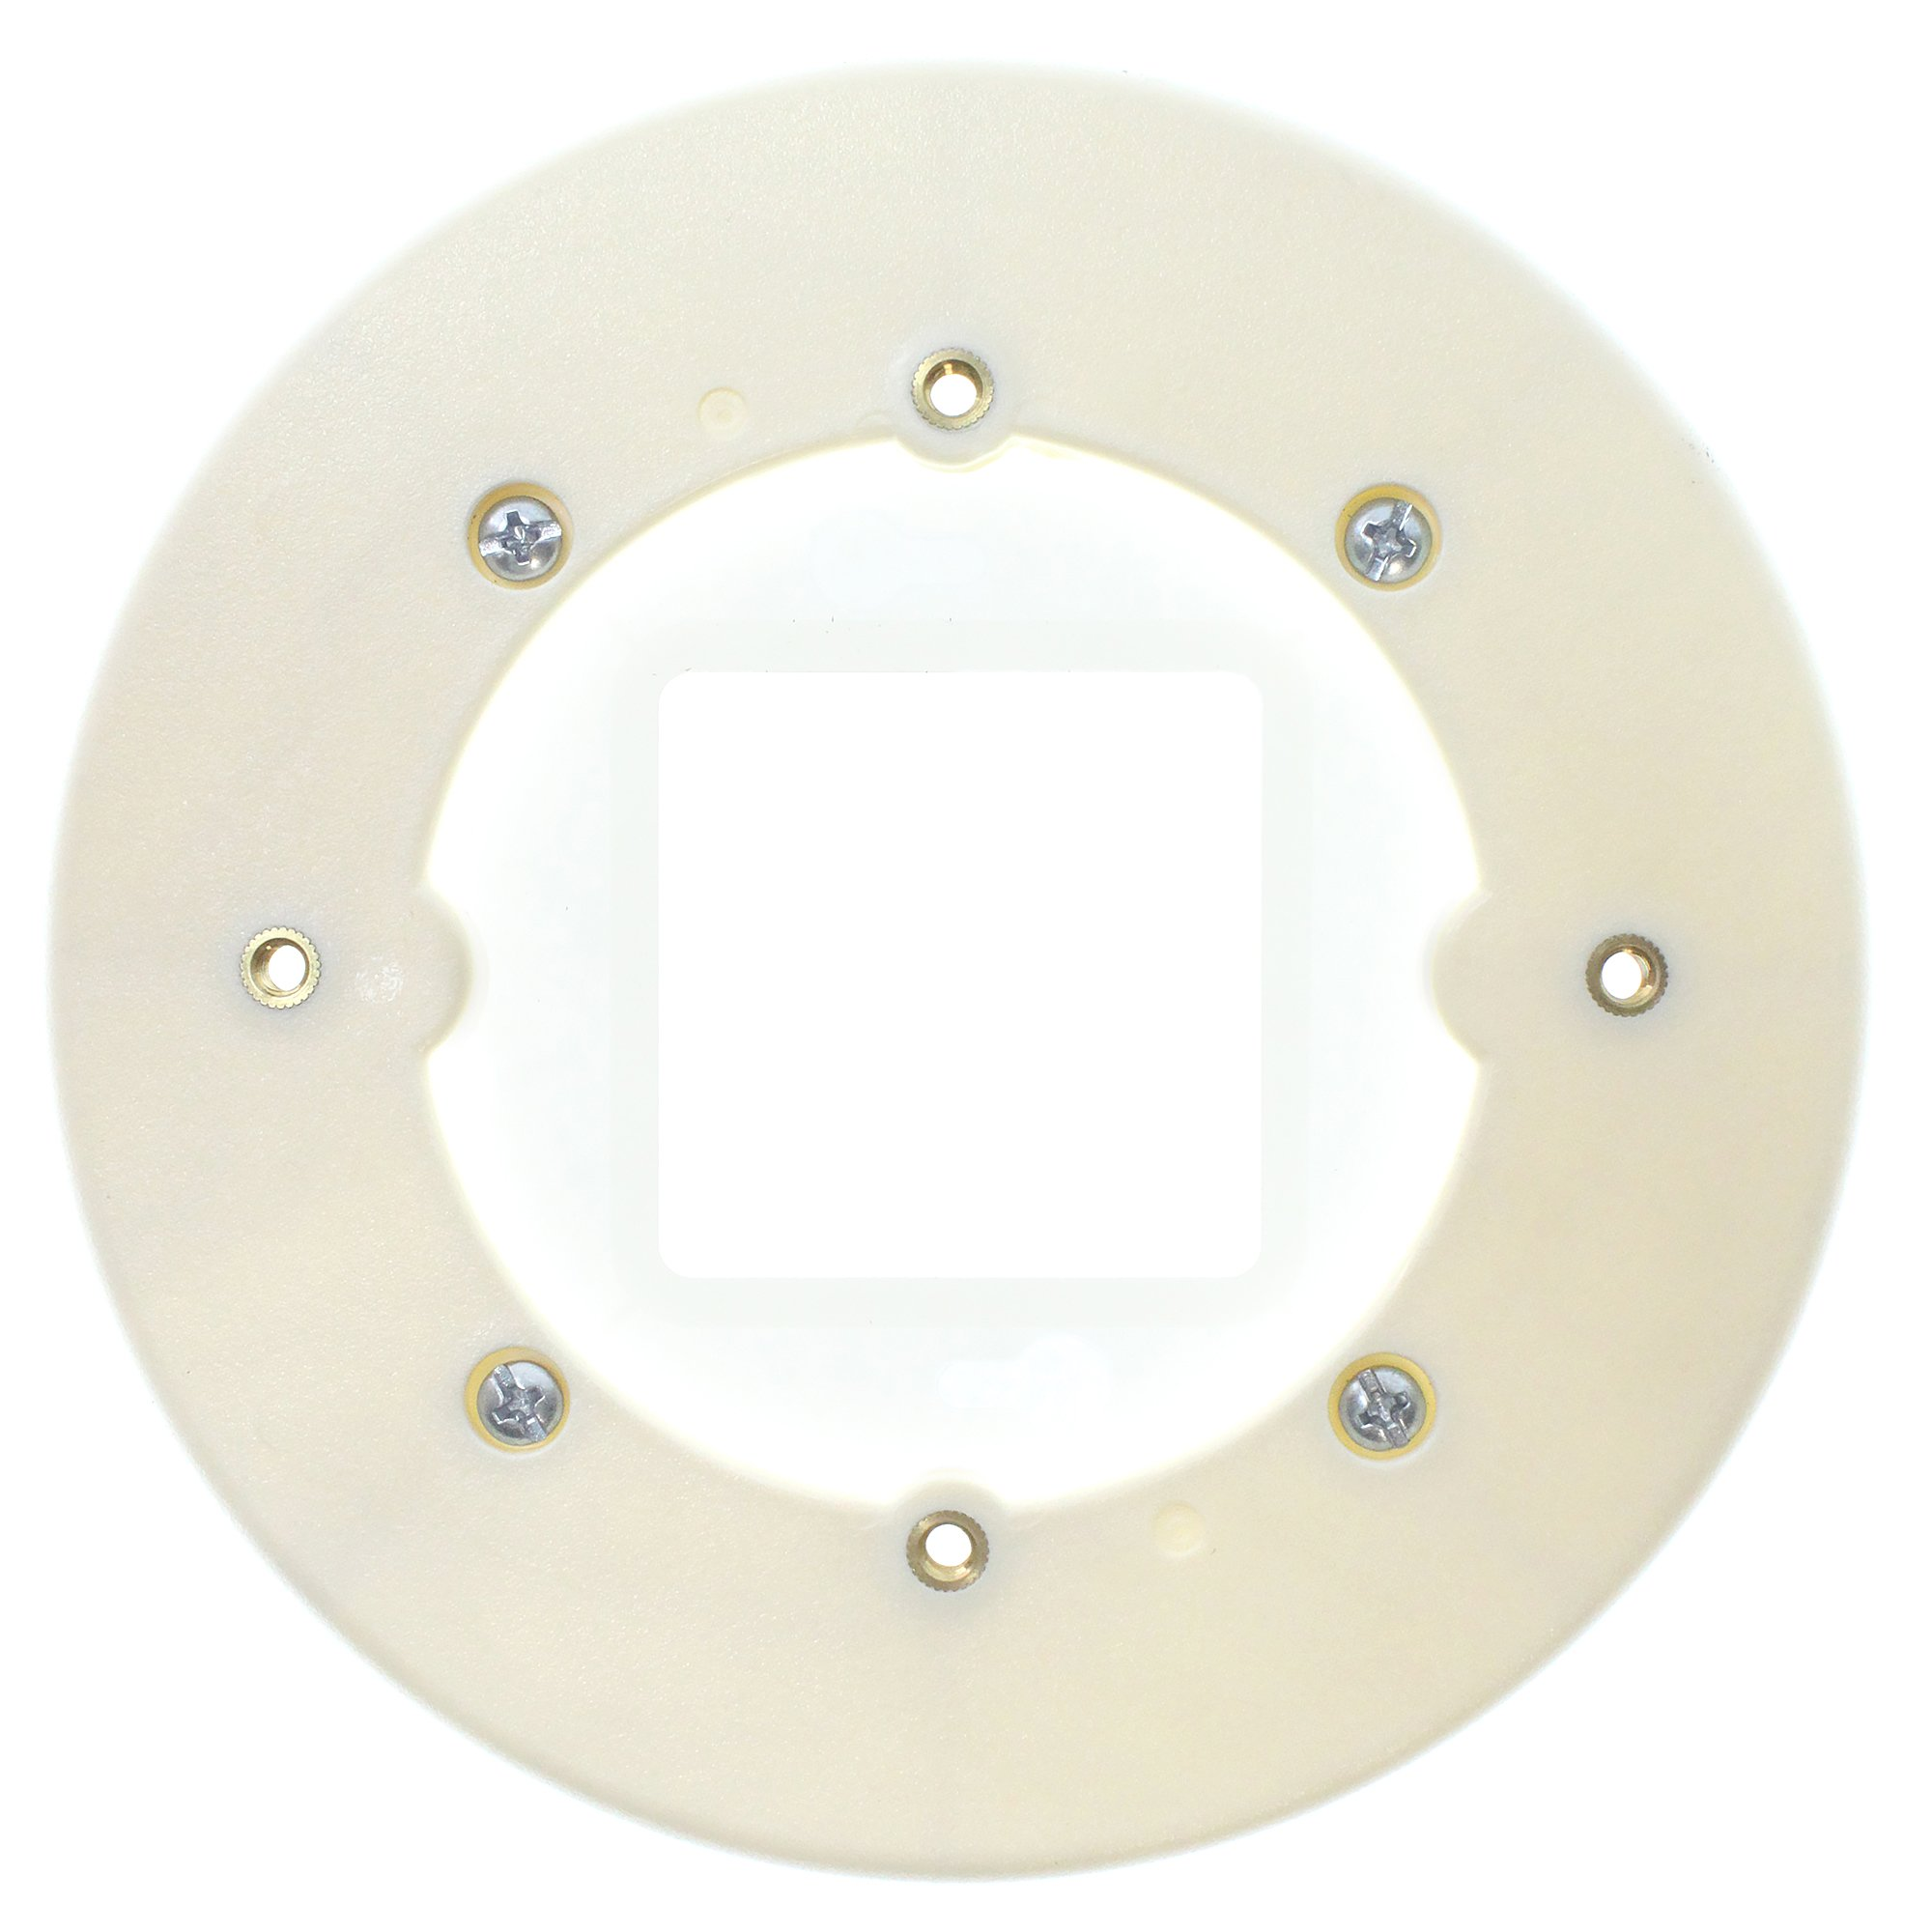 Wiremold Legrand 2337A Round Extension Box, Open Base, Ivory